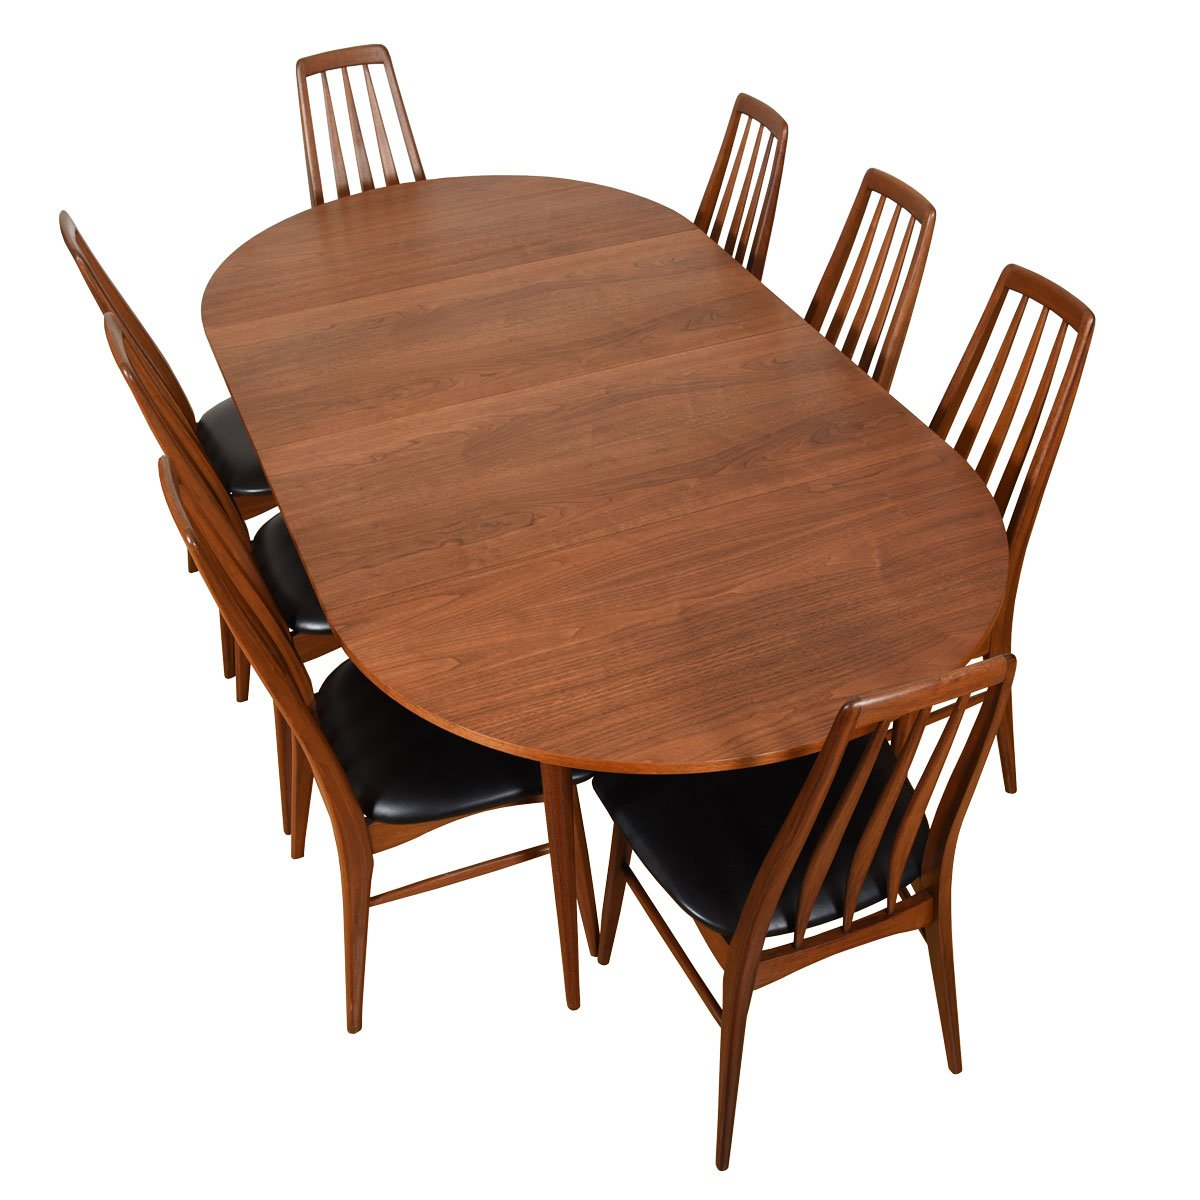 Brown Saltman Petite 42″ Round-to-Oval Walnut Dining Table w/ 2 Leaves.